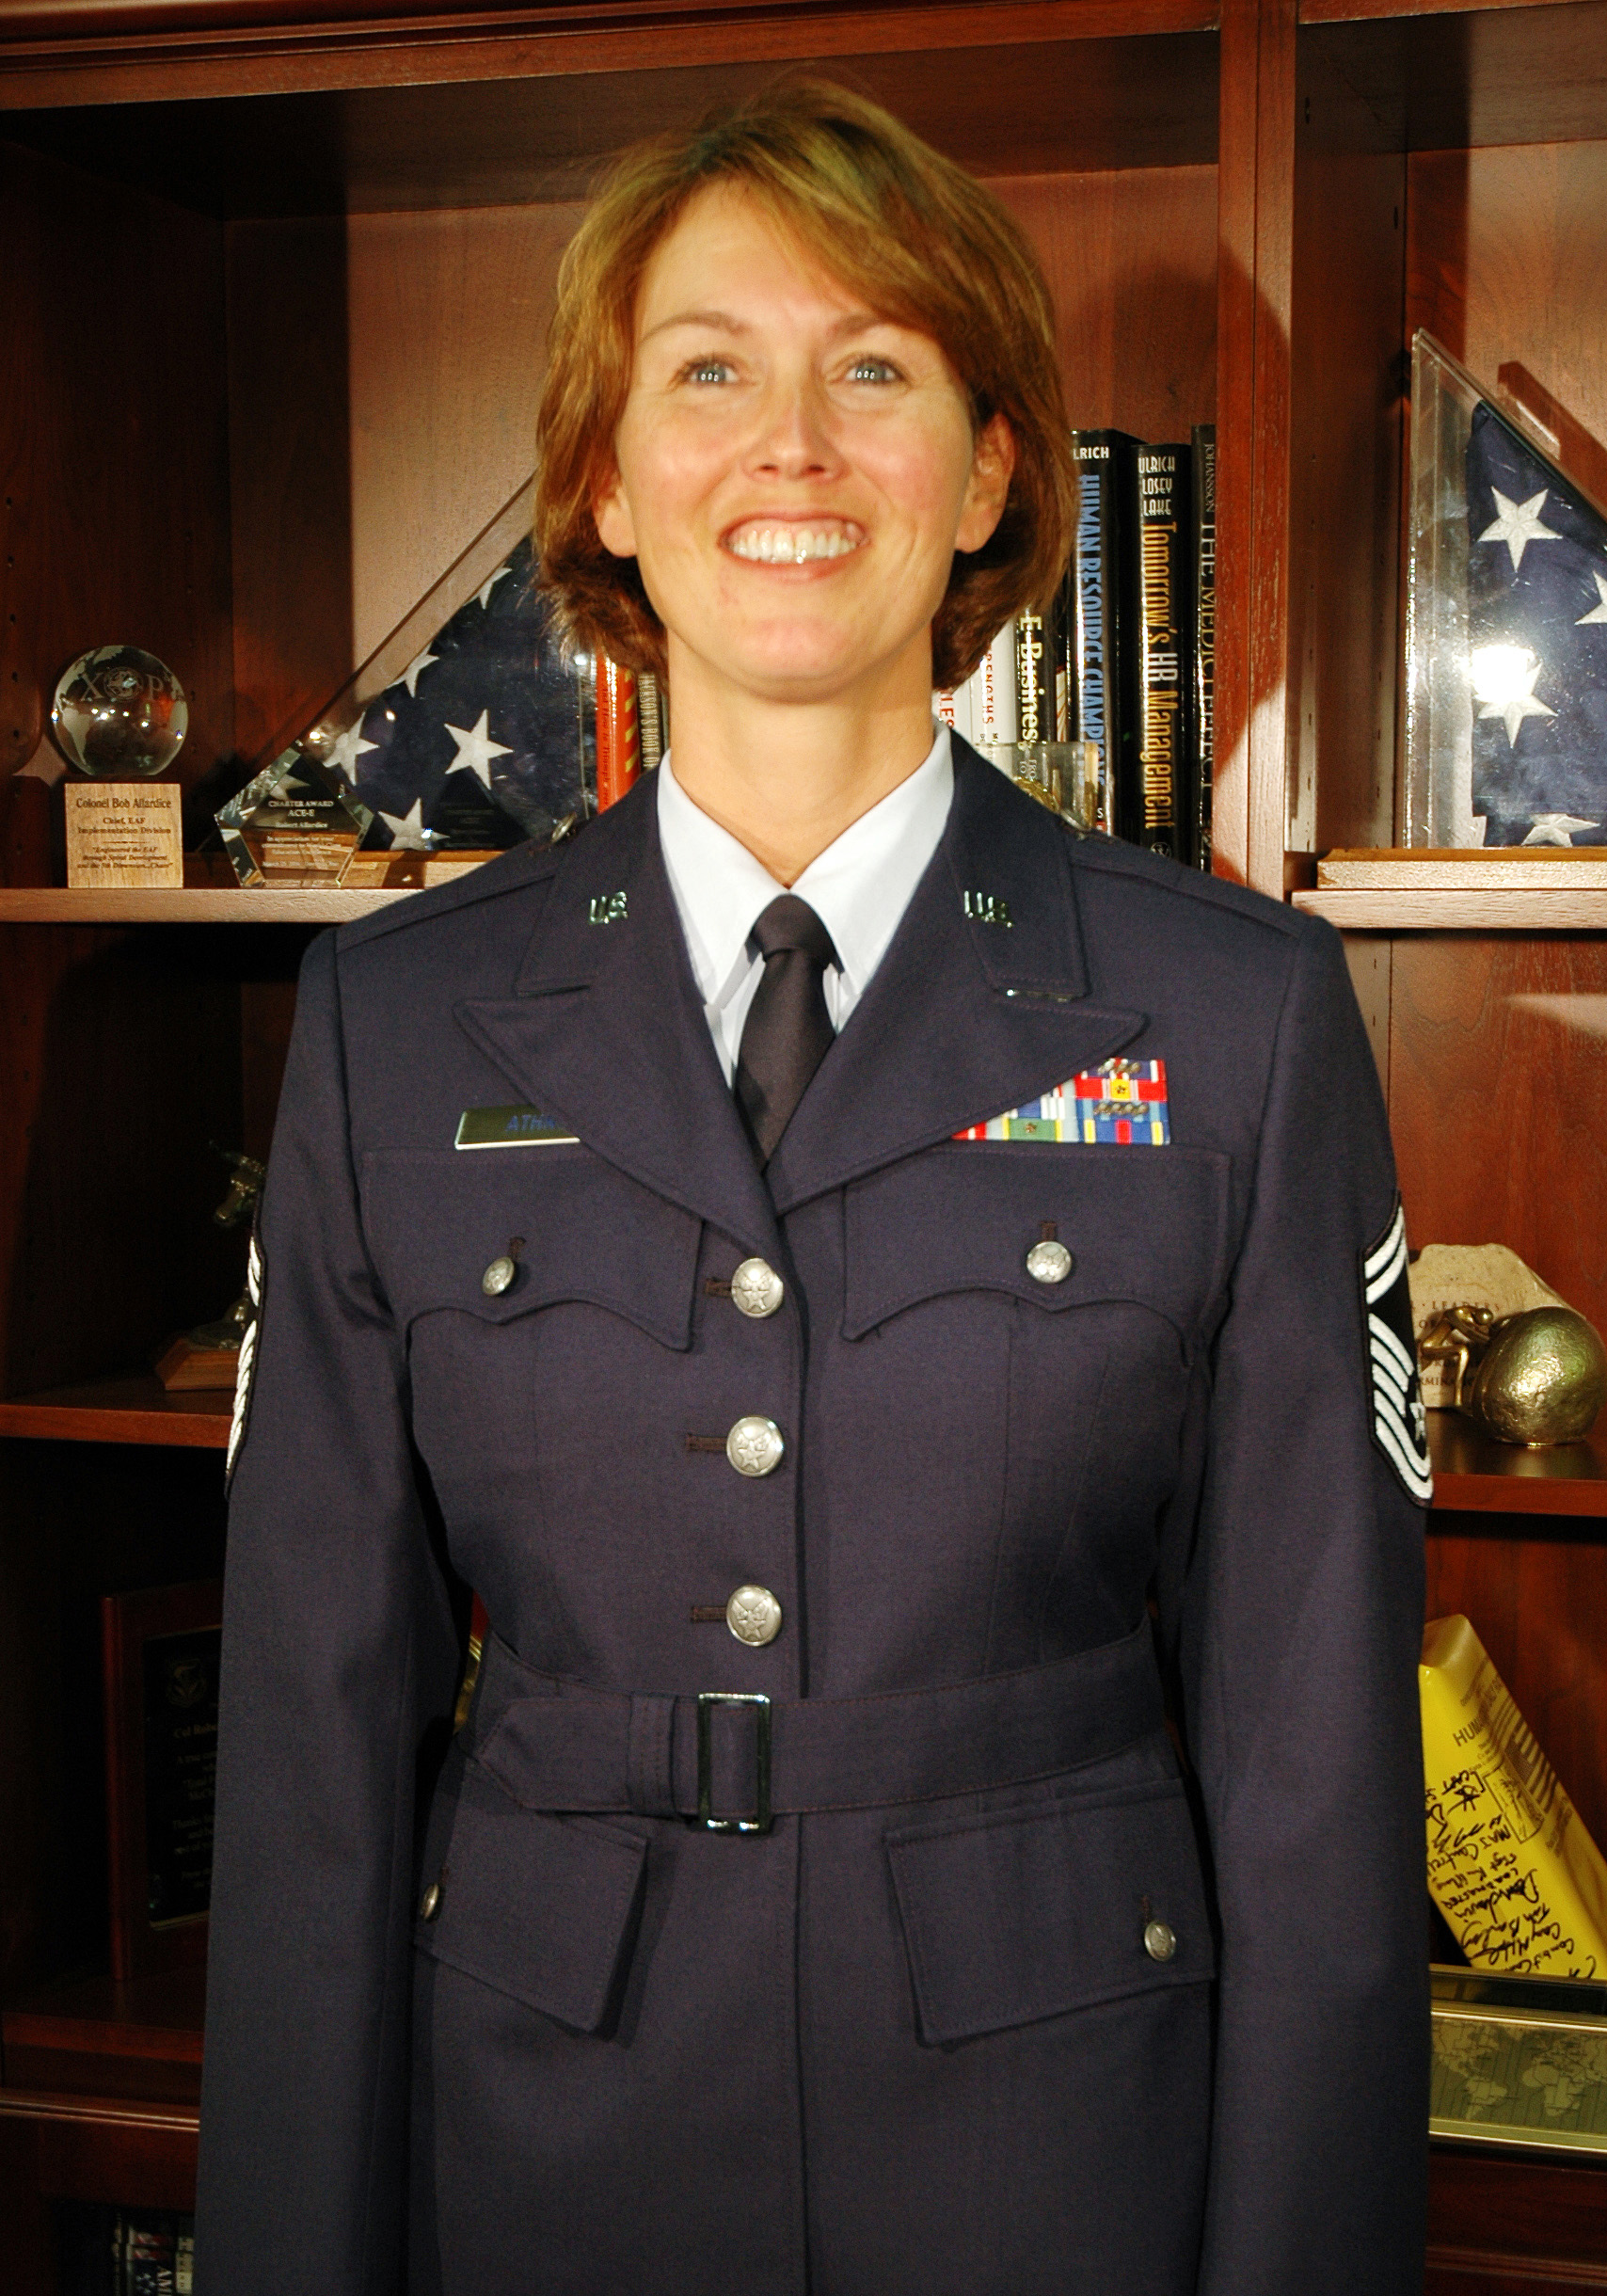 Air force service dress uniform pictures